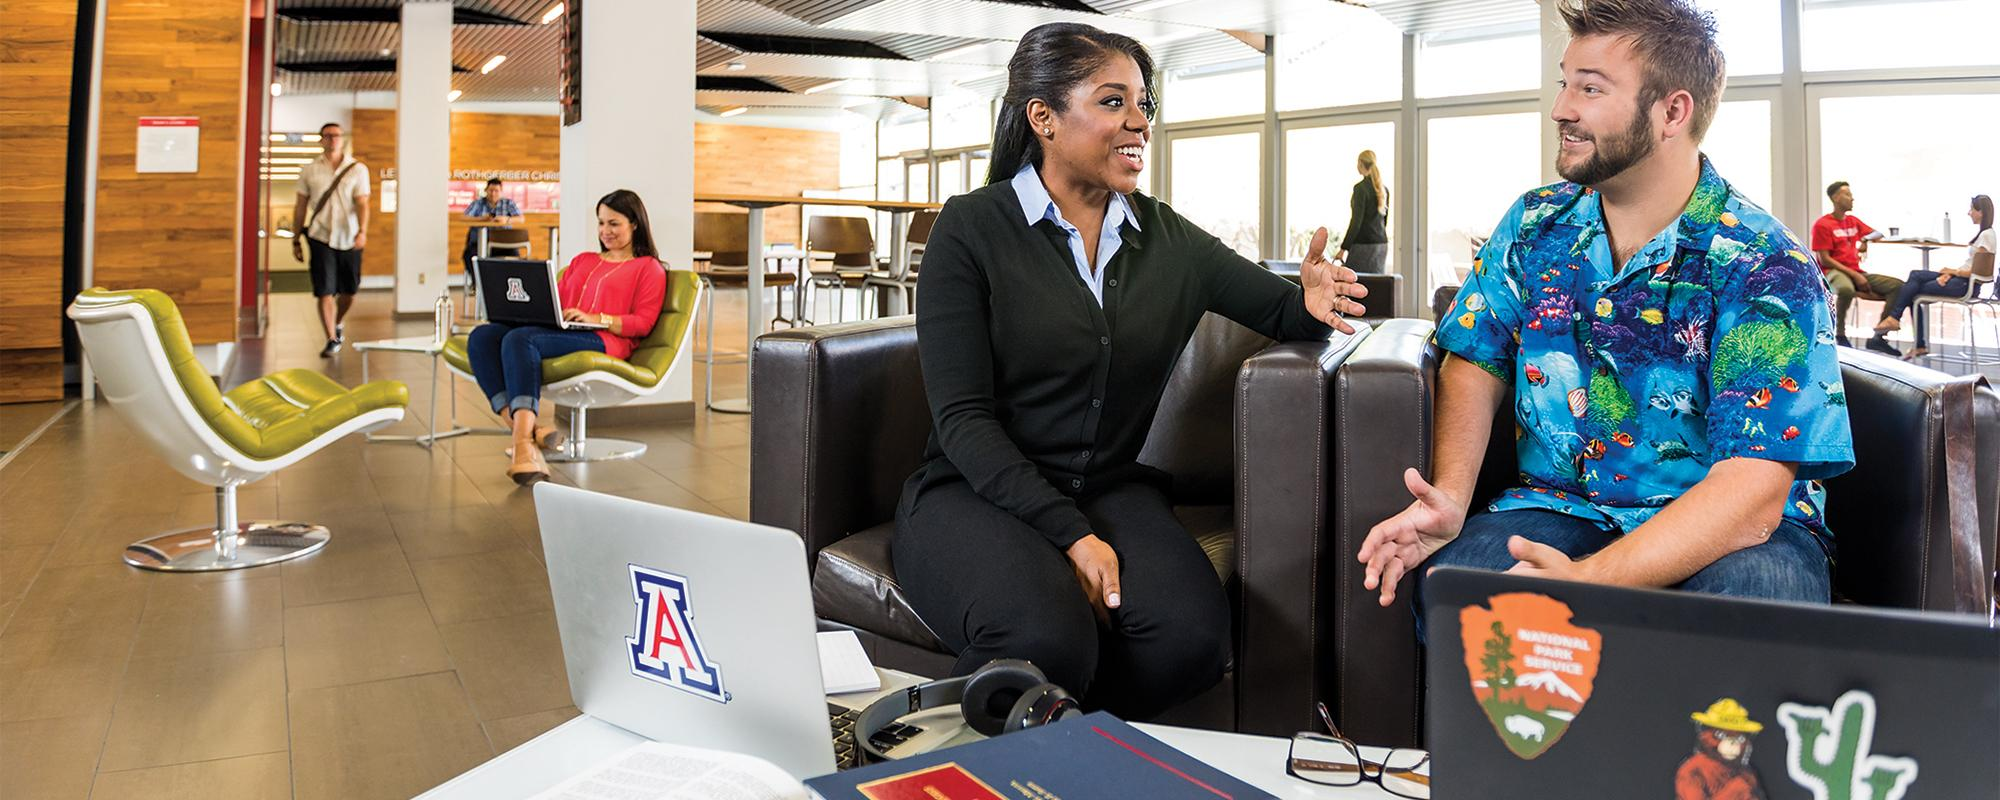 Two University of Arizona Law students in discussion in the lobby